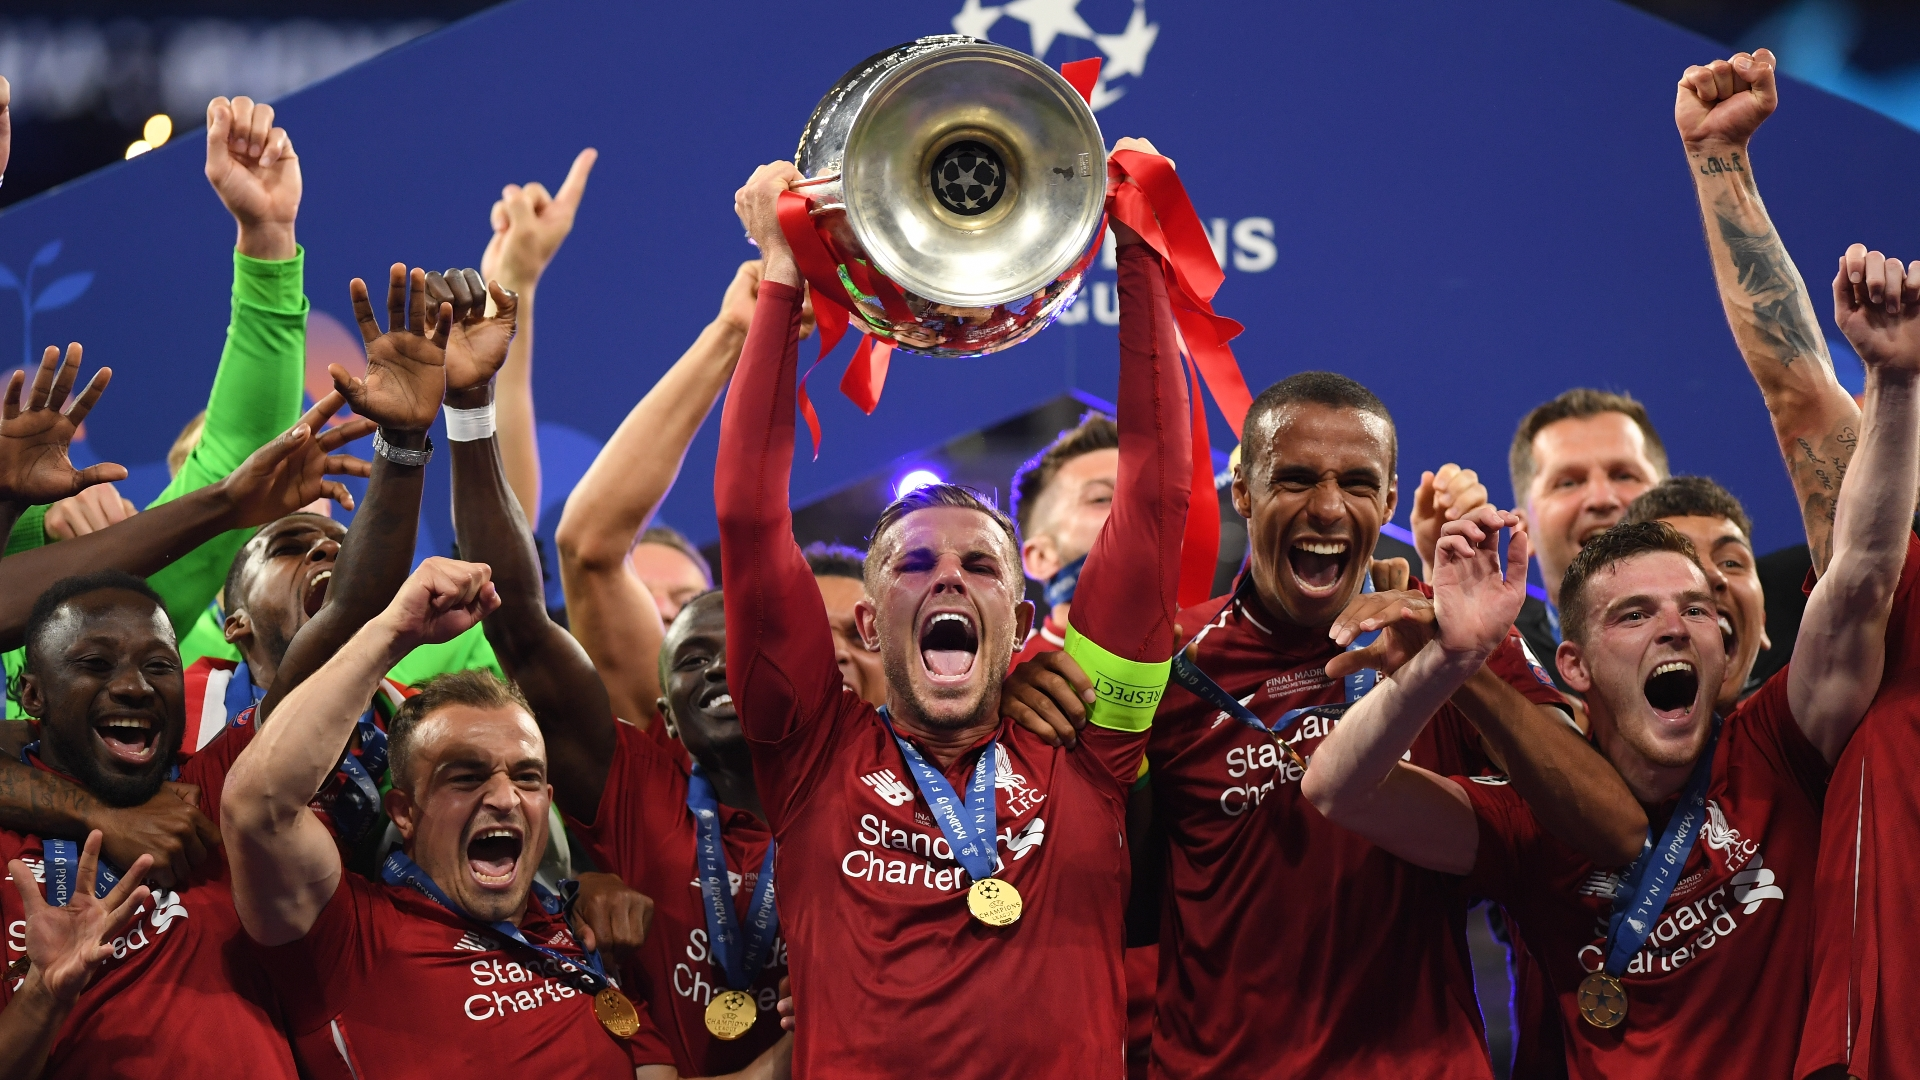 Champions League 2018-19: Live tables, fixtures, squad list